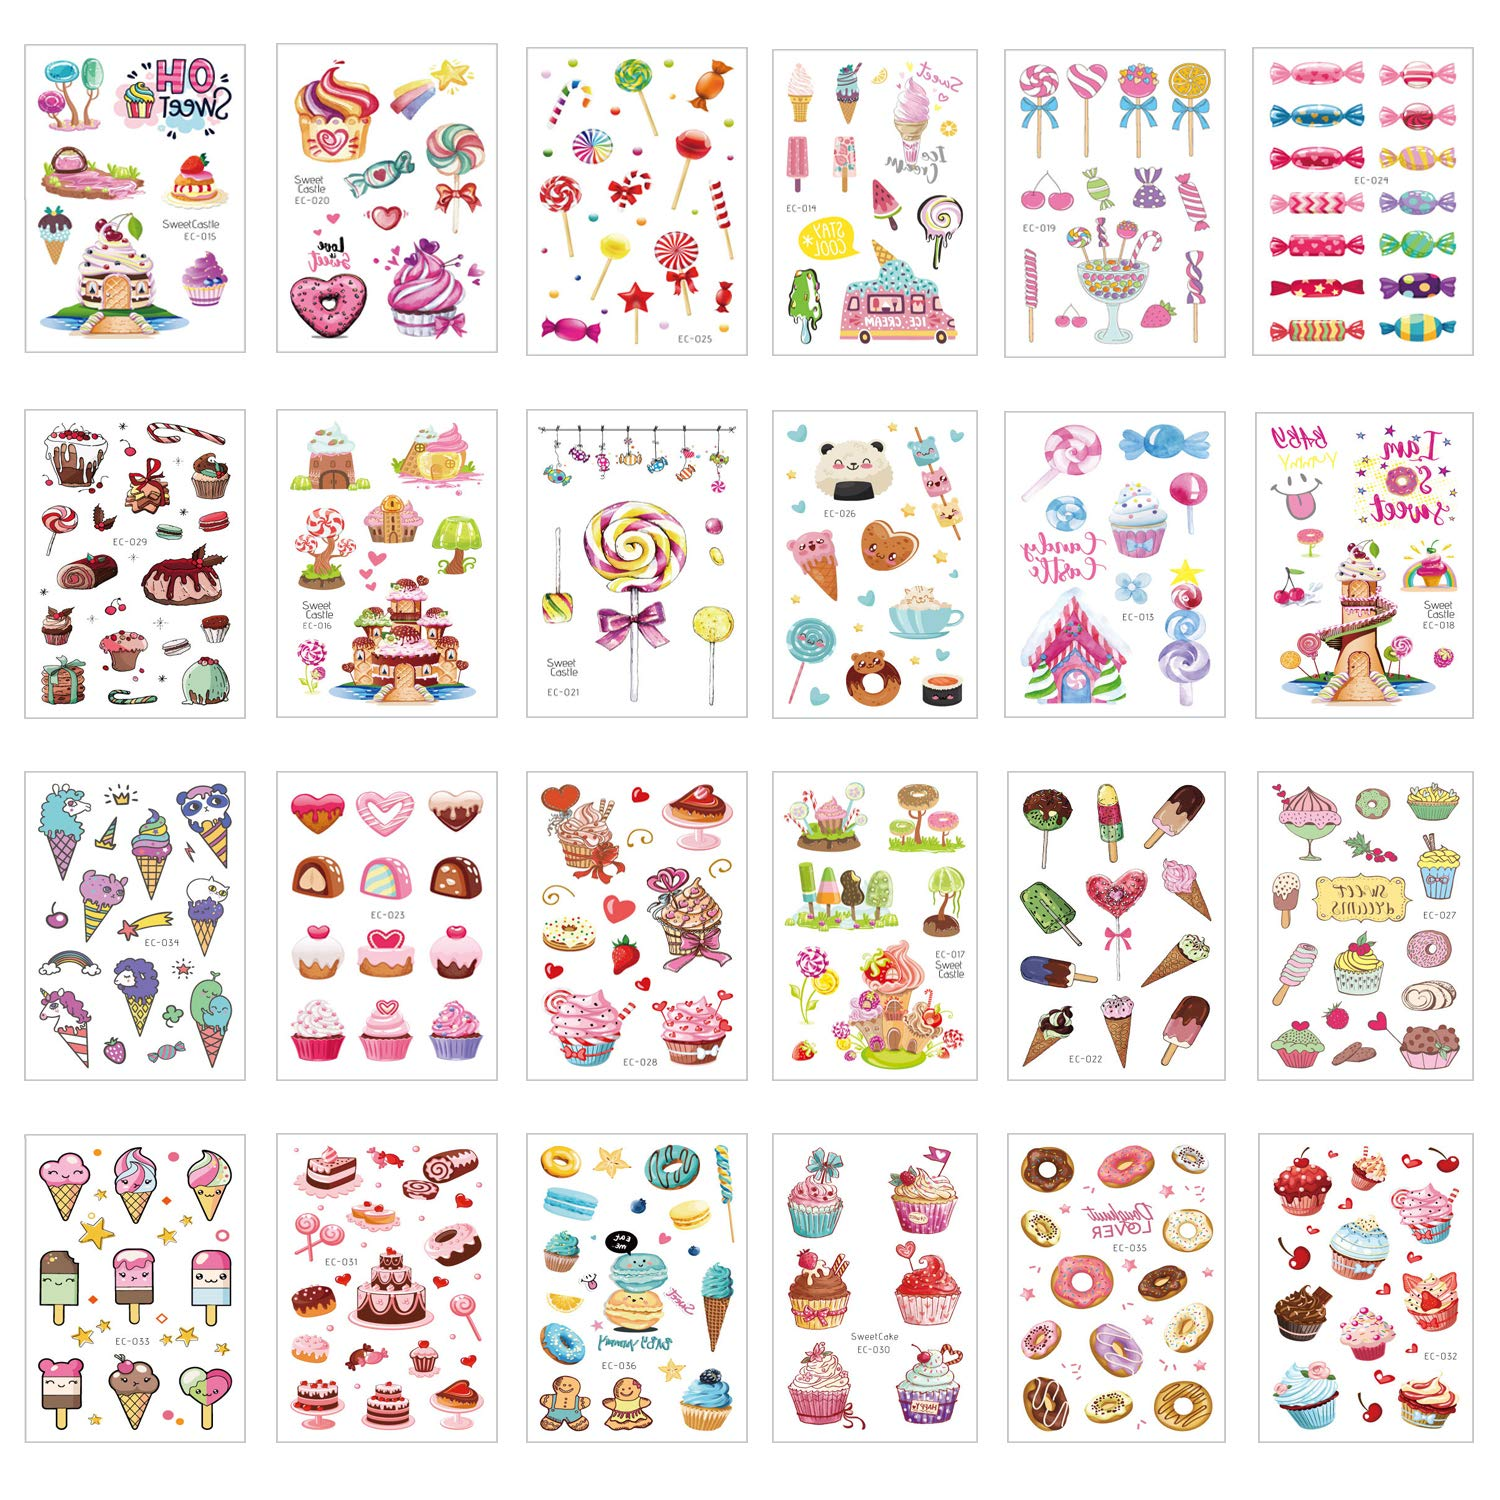 Max 75% OFF 300PCS Ice Cream Temporary Tattoos for to Max 48% OFF Kids Easy Tempora Use